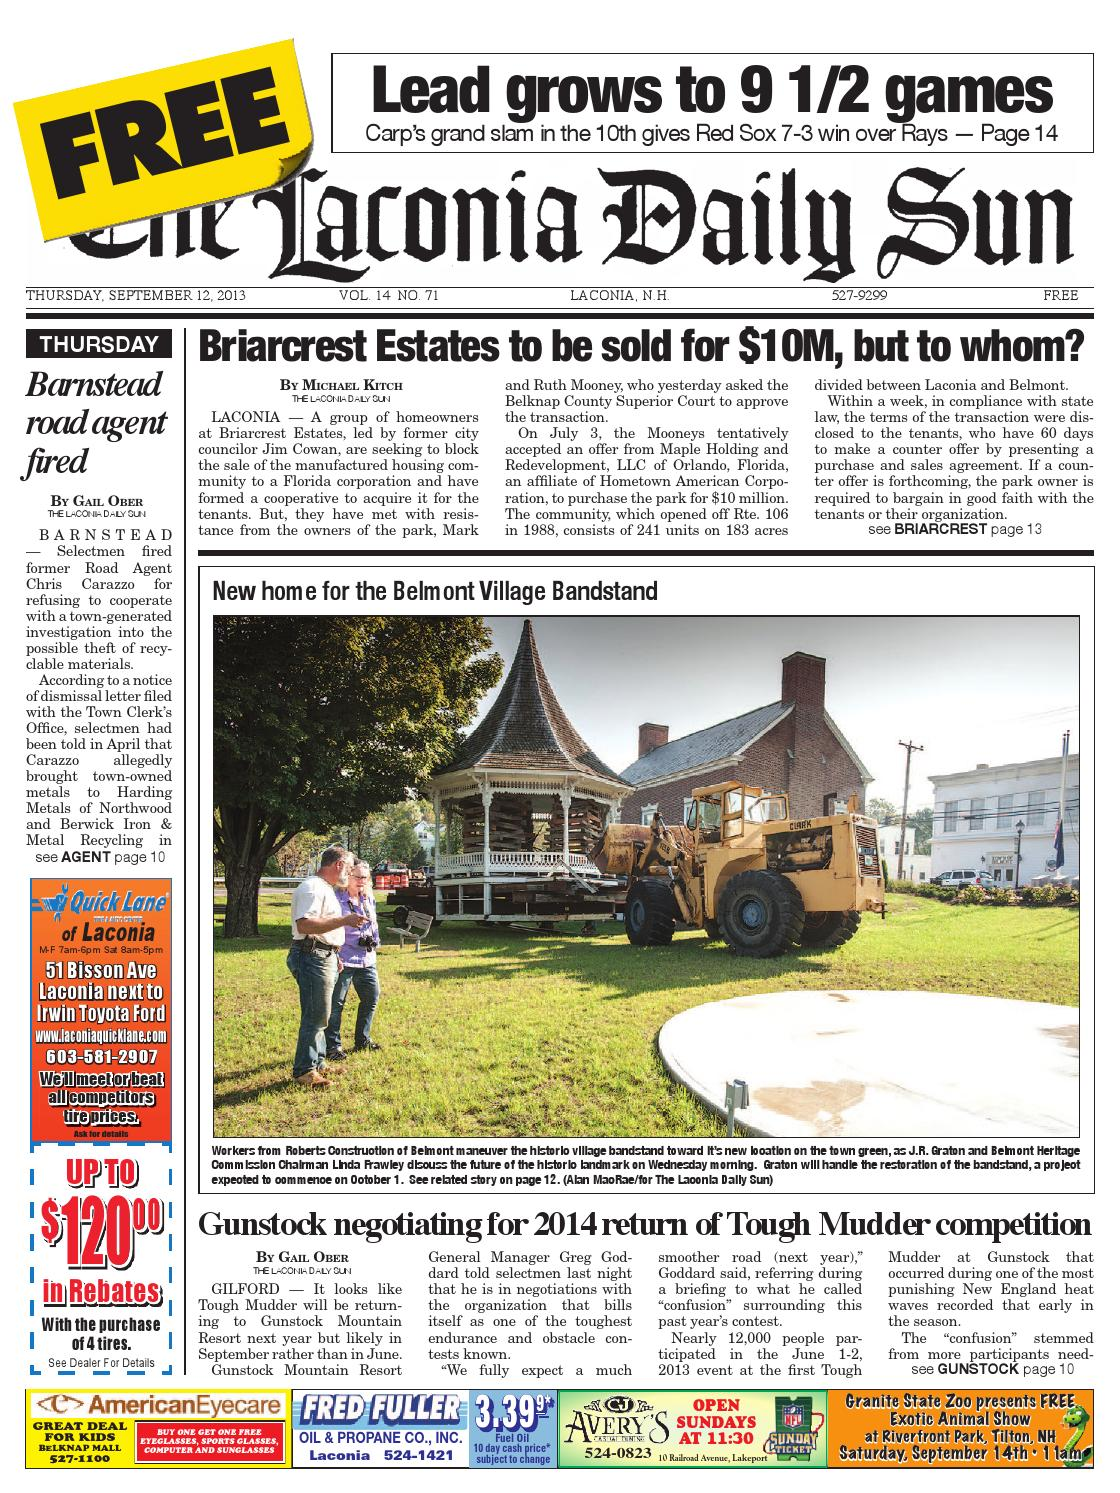 The laconia daily sun, september 12, 2013 by Daily Sun - issuu